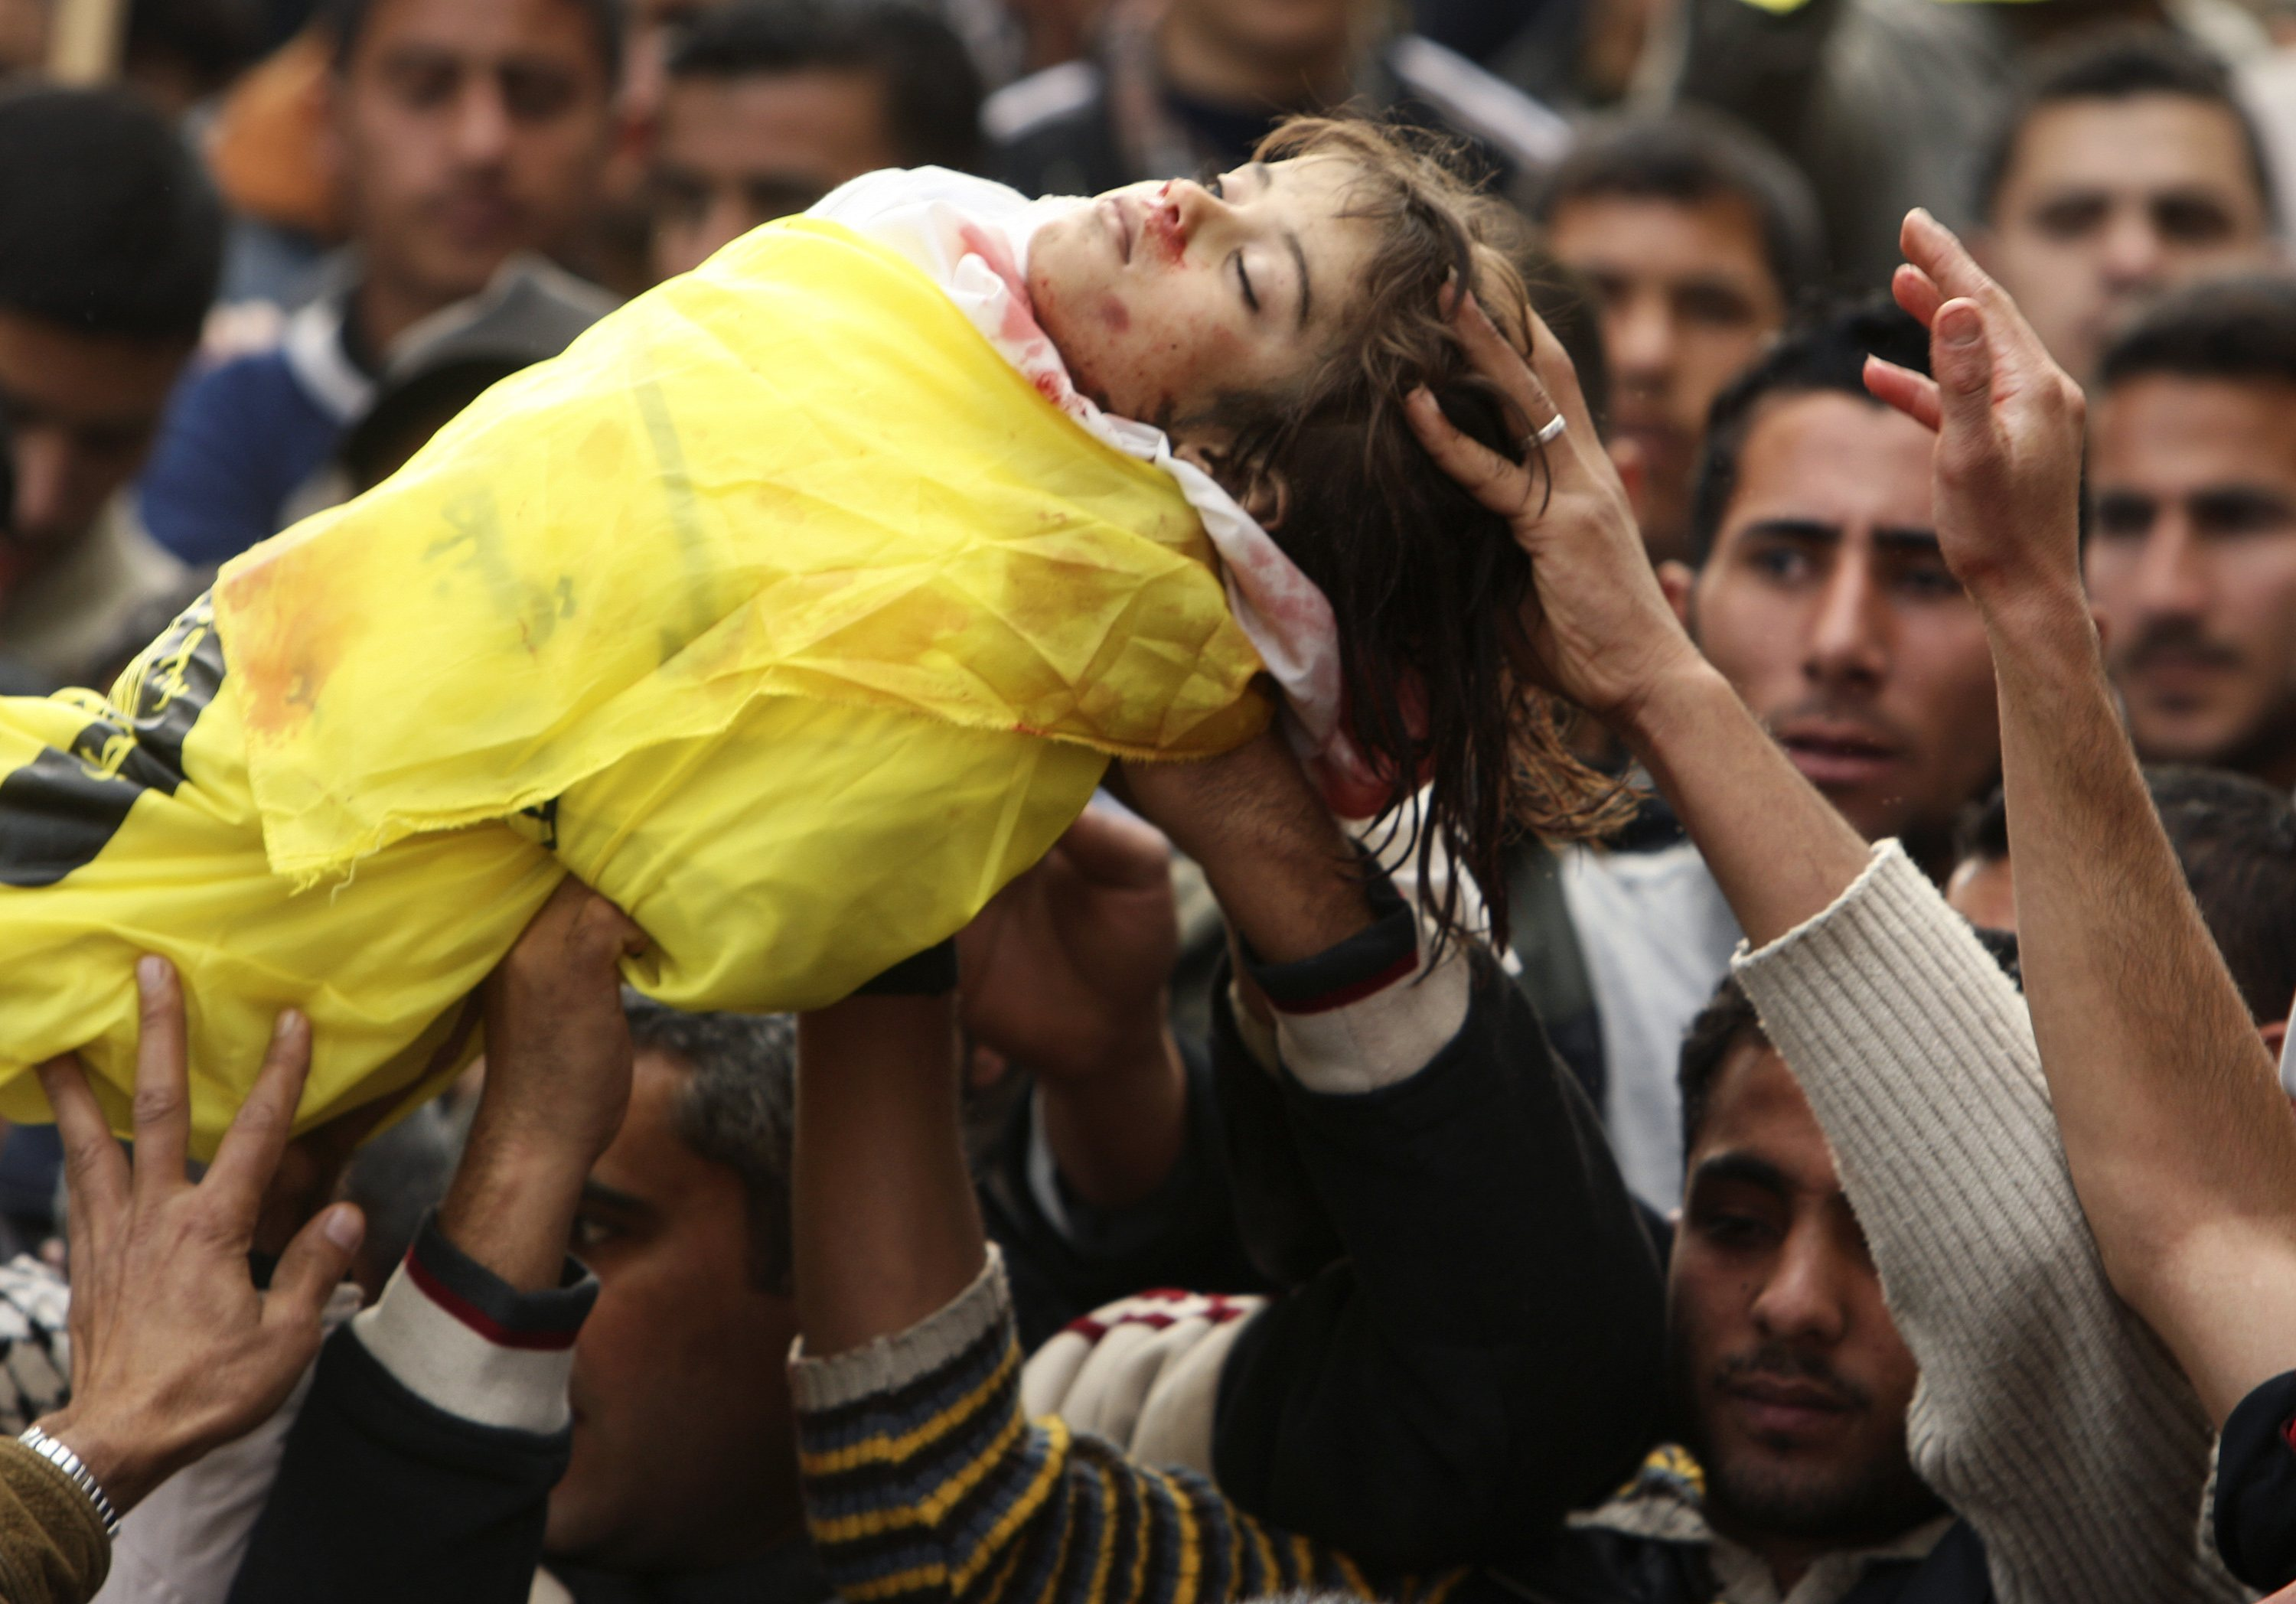 Palestinians carry the body of 4-year-old Lama Hamdan during her funeral in the town of Beit Hanoun in the northern Gaza Strip yesterday. In Beit Hano...